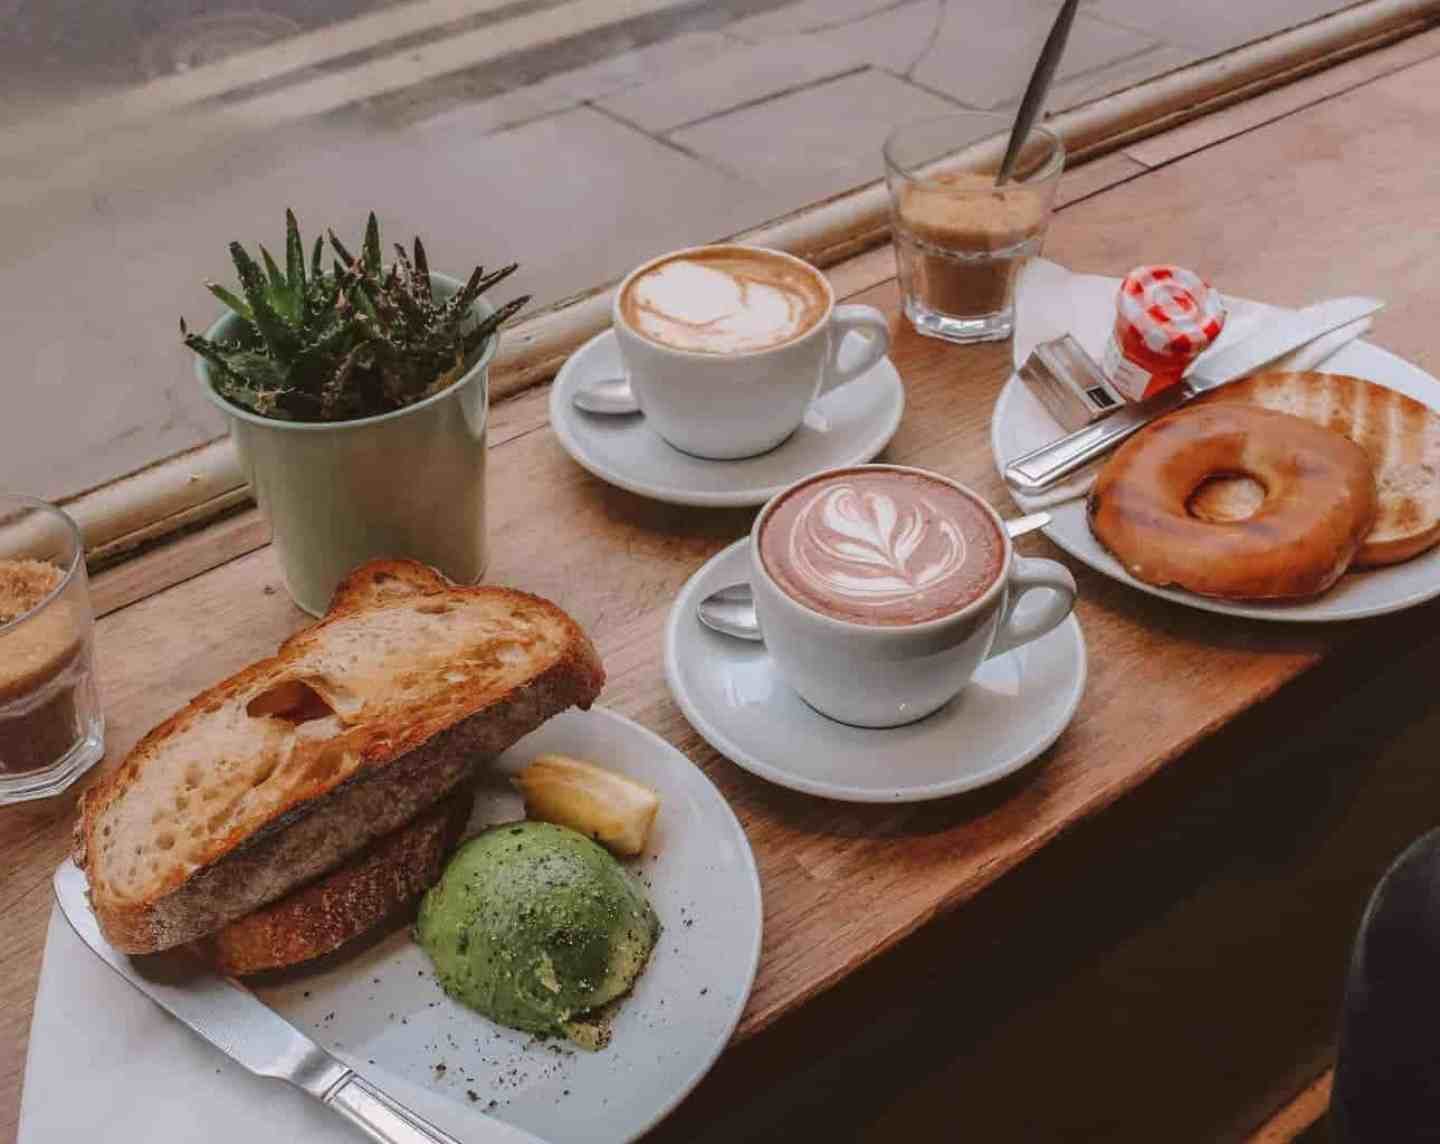 The Missing Bean - 11 Best Brunch Places in Oxford